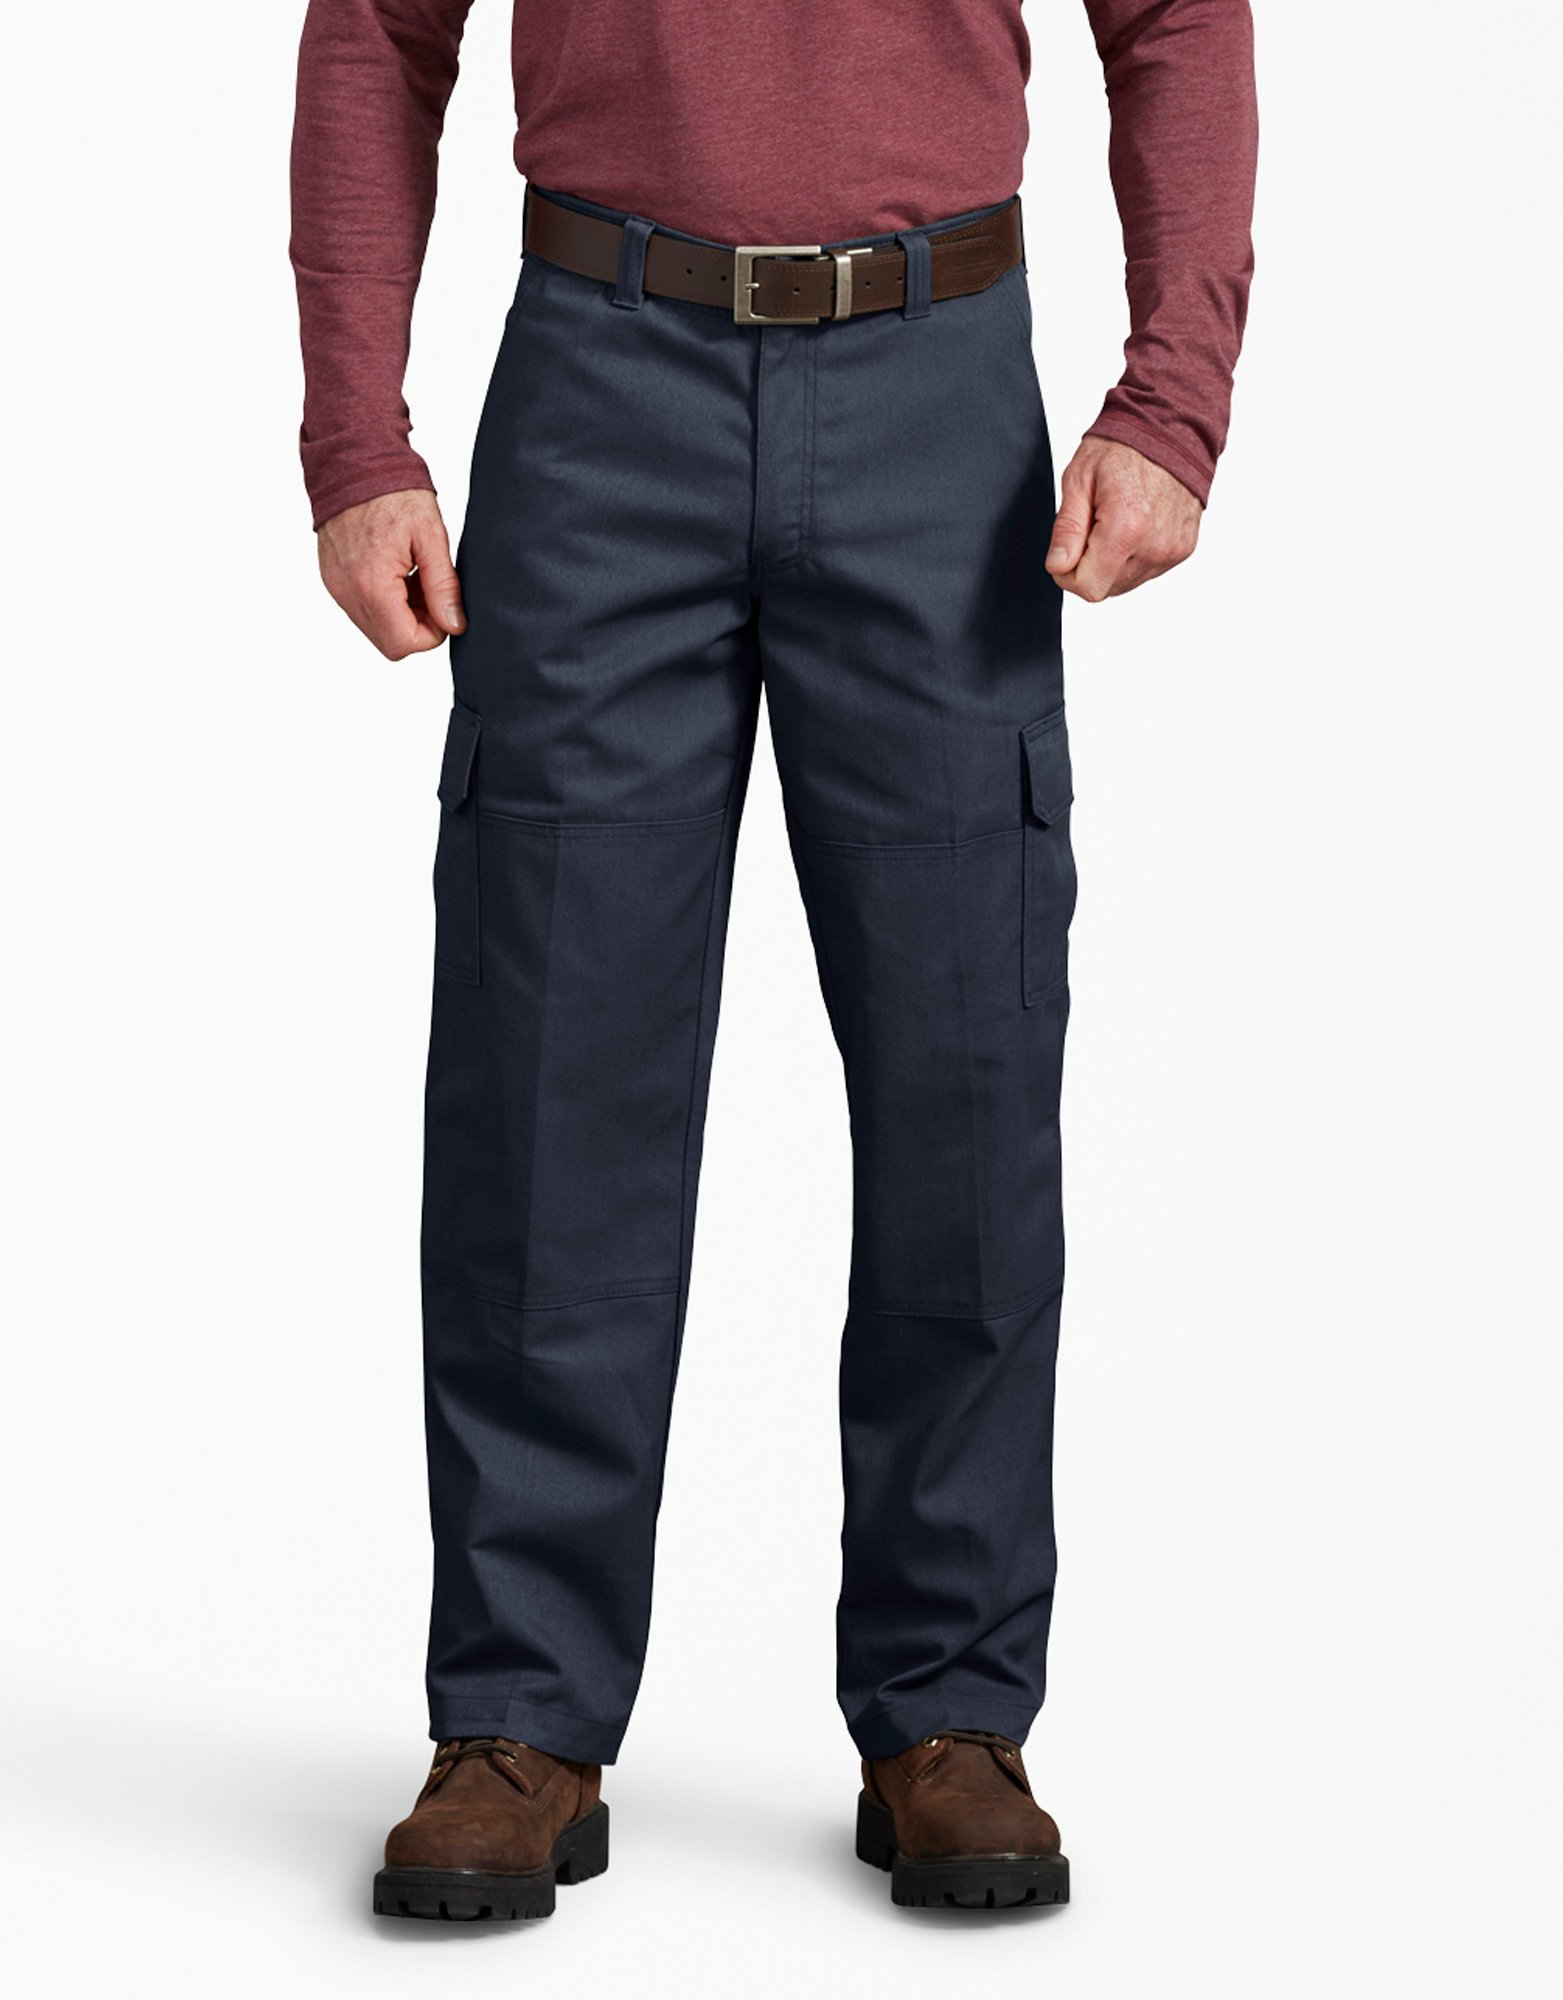 FLEX Active Waist Regular Fit Cargo Work Pants - Dark Navy (DN)